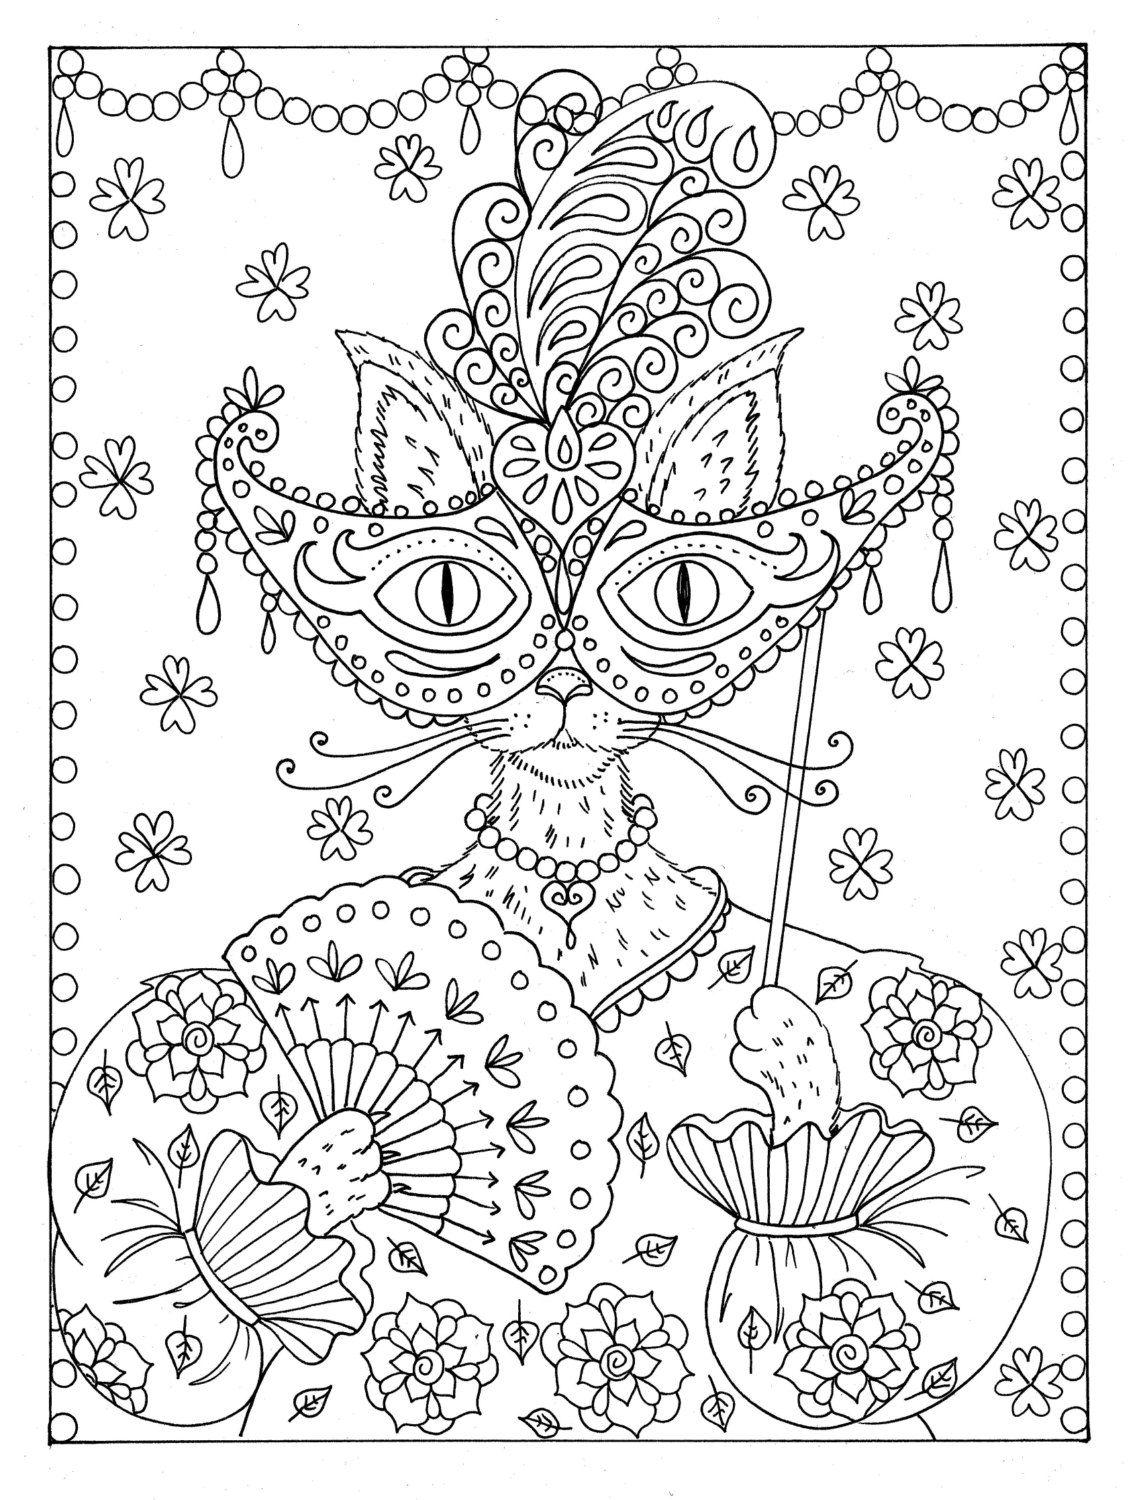 Coloring Book Fantasy Cats Be The Artist Book For Cat Lovers Etsy In 2020 Cat Coloring Book Coloring Books Cat Coloring Page